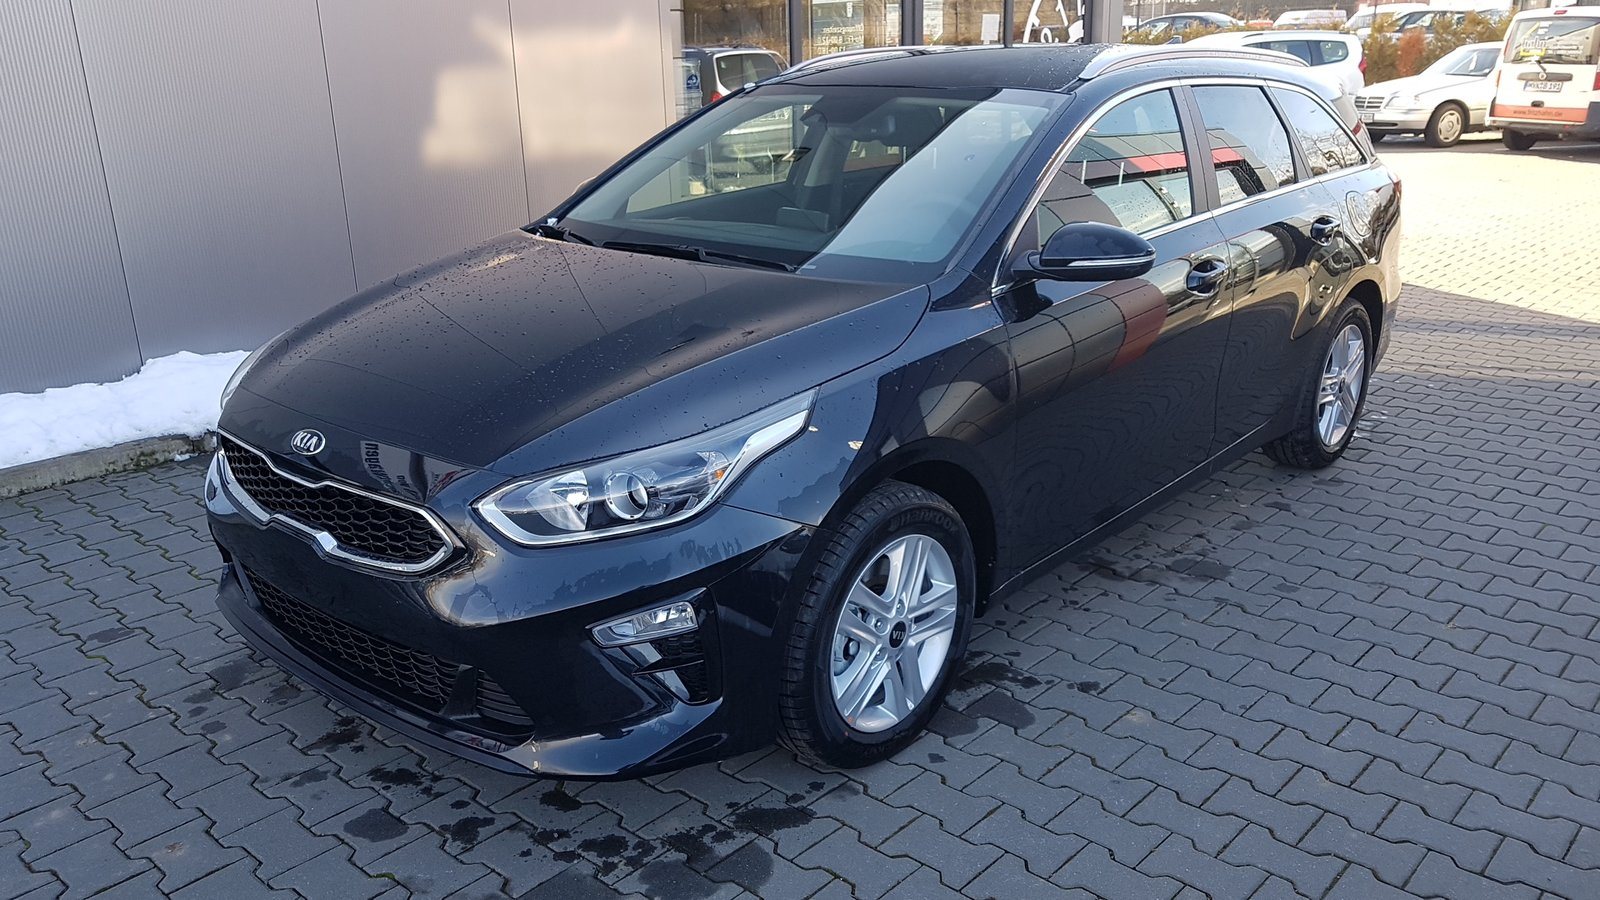 KIA CEED cee'd SW 1.4 N. MODELL*EXCLUSIVE*NAVI*6d TEMP* Autosoft BV, Enschede